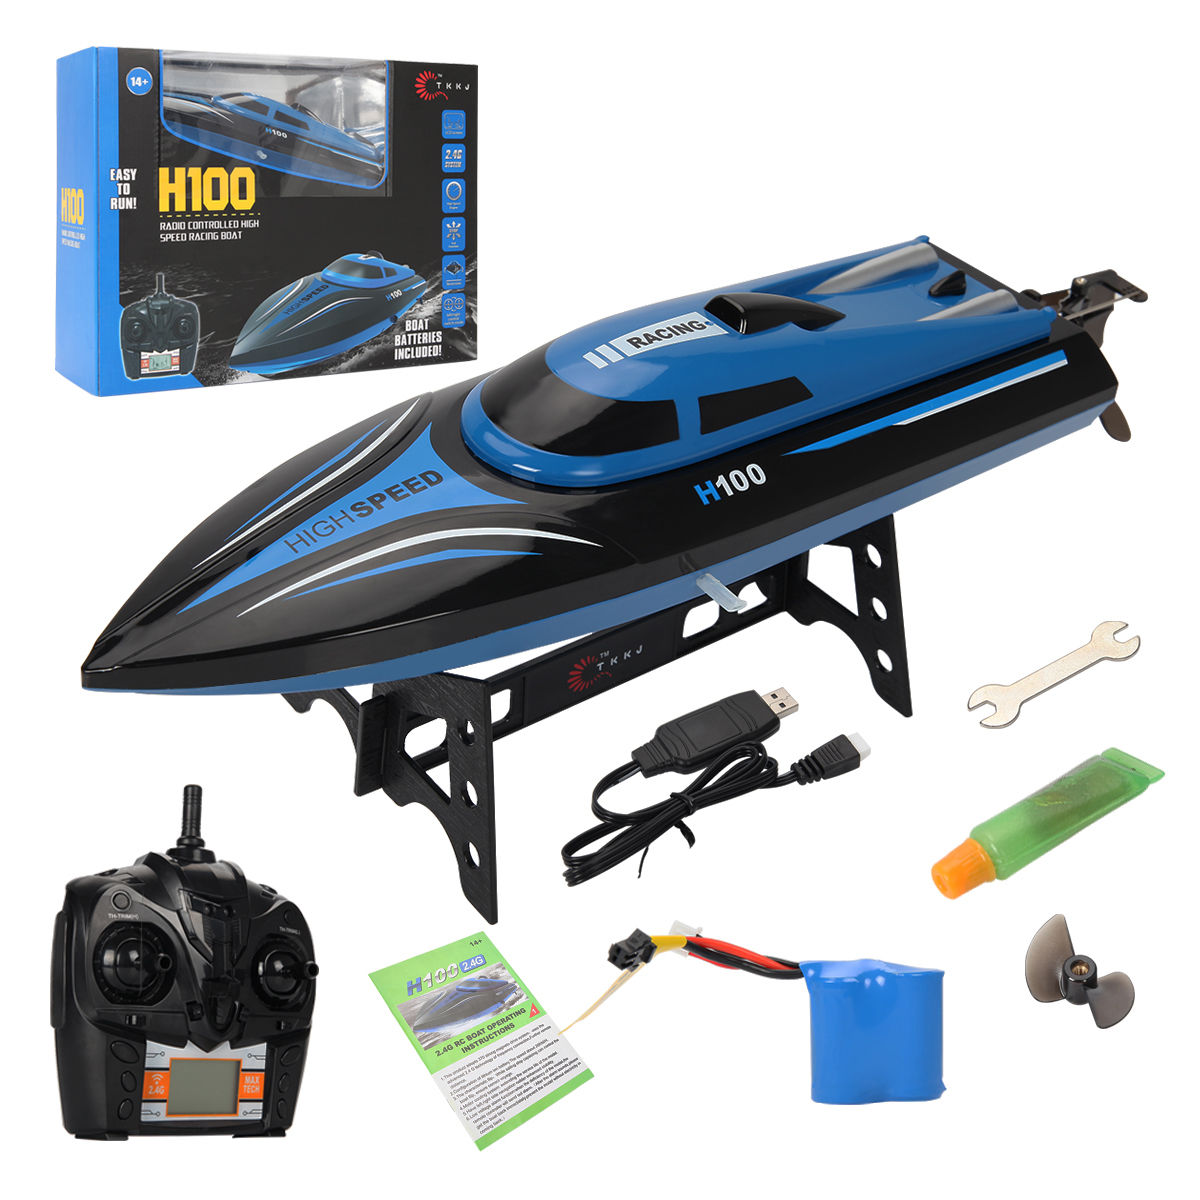 H100 2.4G RC High Speed Racing Boat 180° Flip Radio Controlled Electric Toy Gift